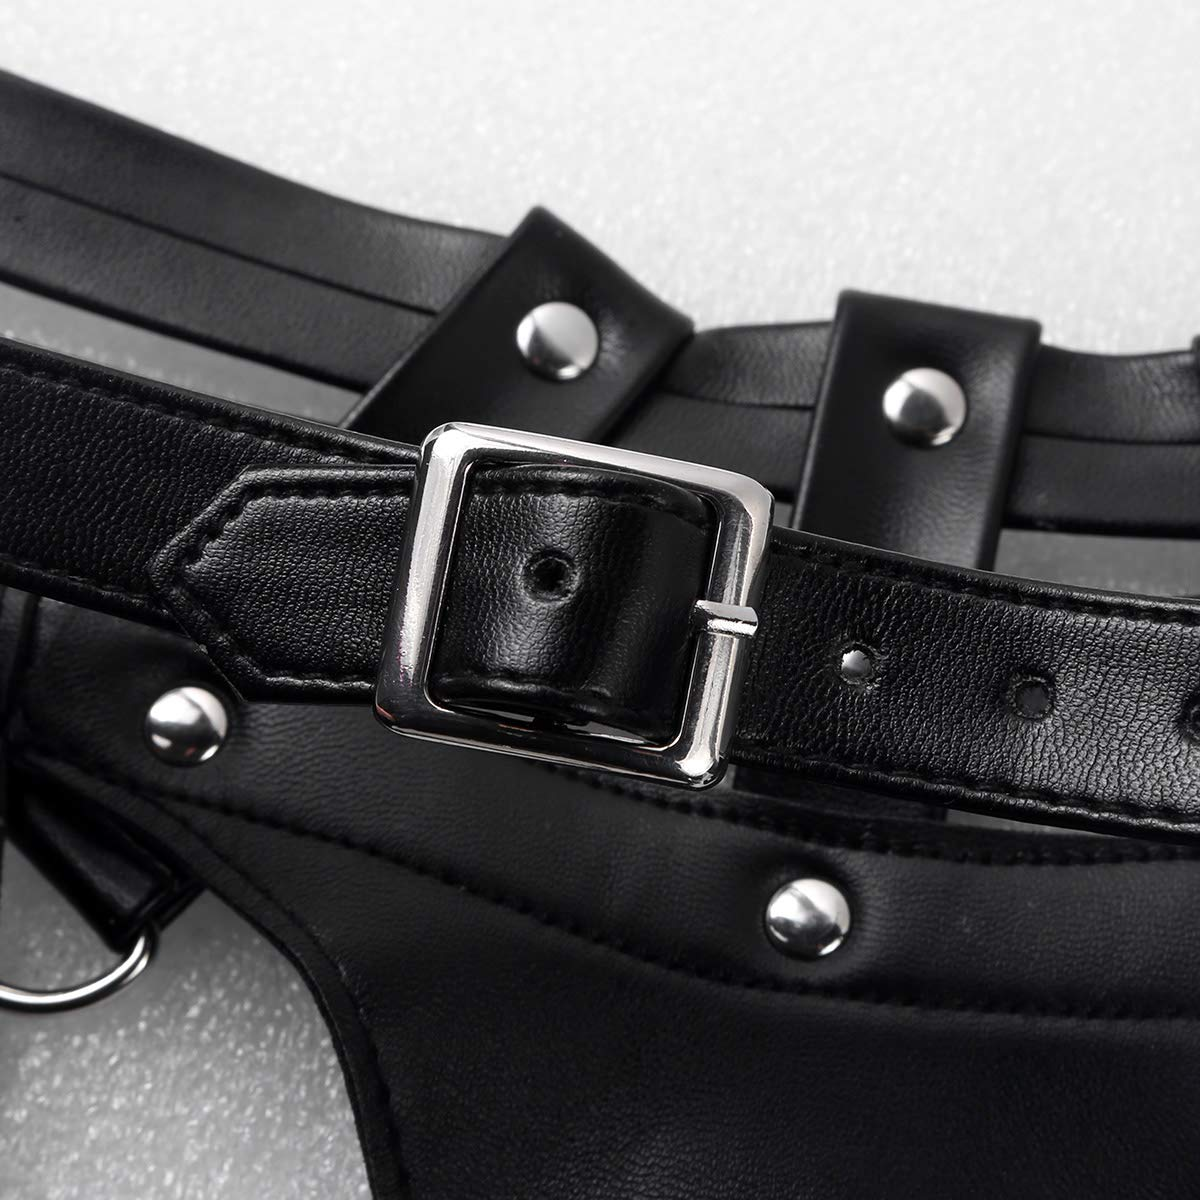 inlzdz Mens Adjustable Faux Leather Body Chest Fancy Buckles Costumes with Metal O-rings